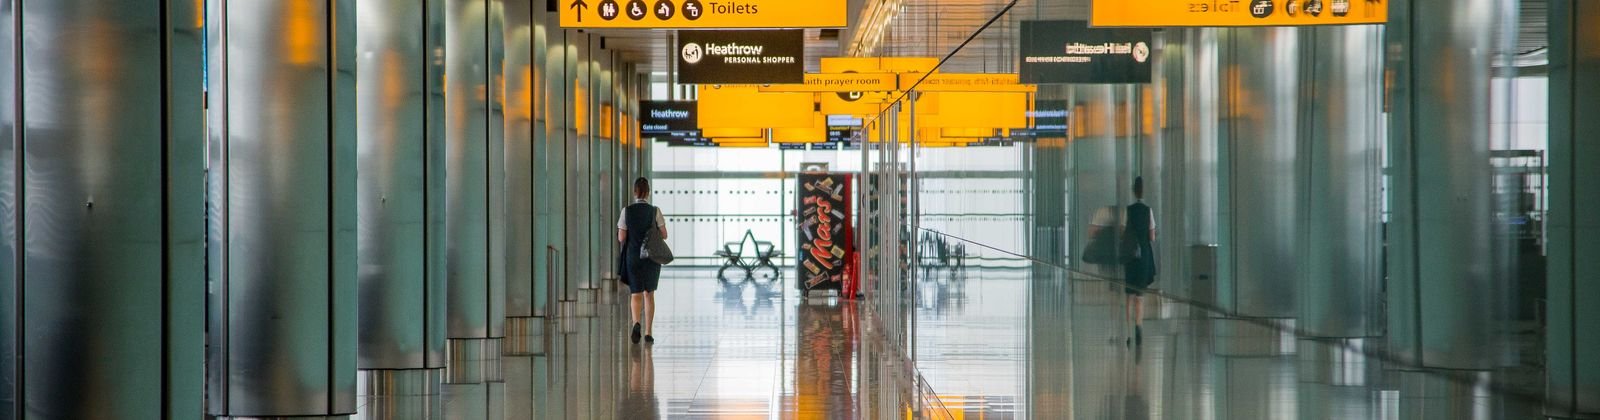 11 Top Hotels Near London Heathrow Airport Lhr Close To All Terminals